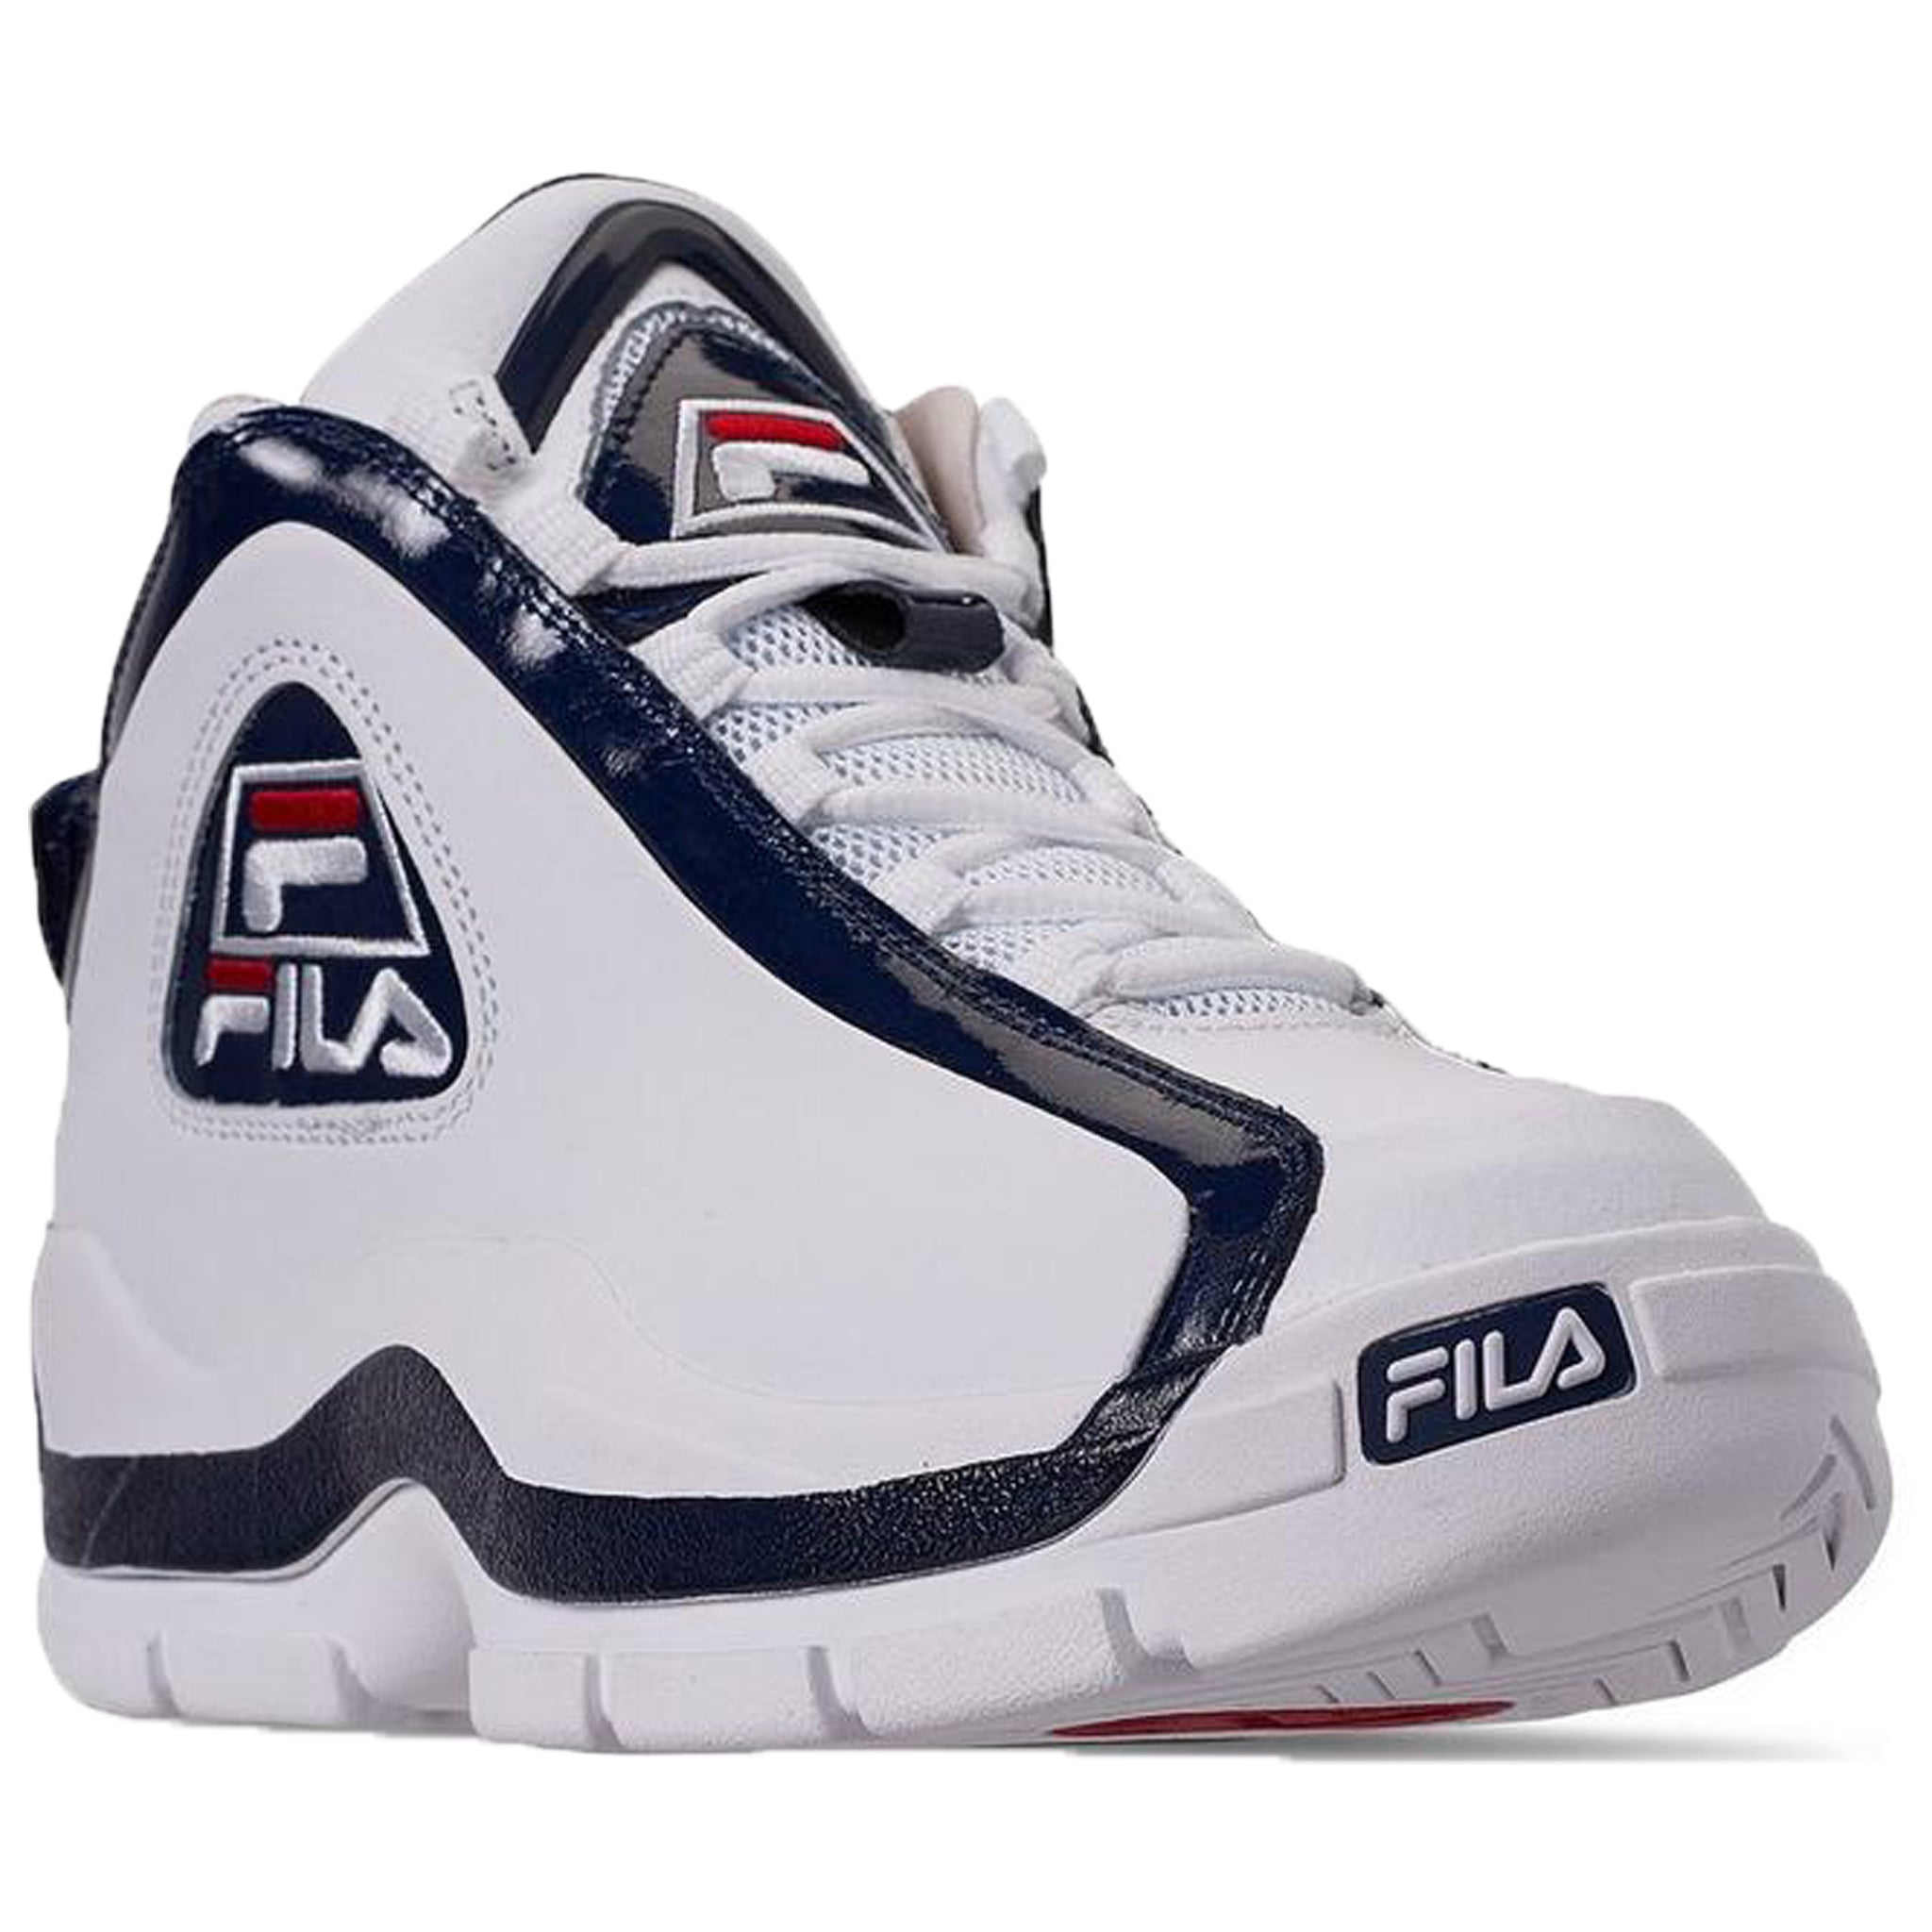 grant hill basketball shoes